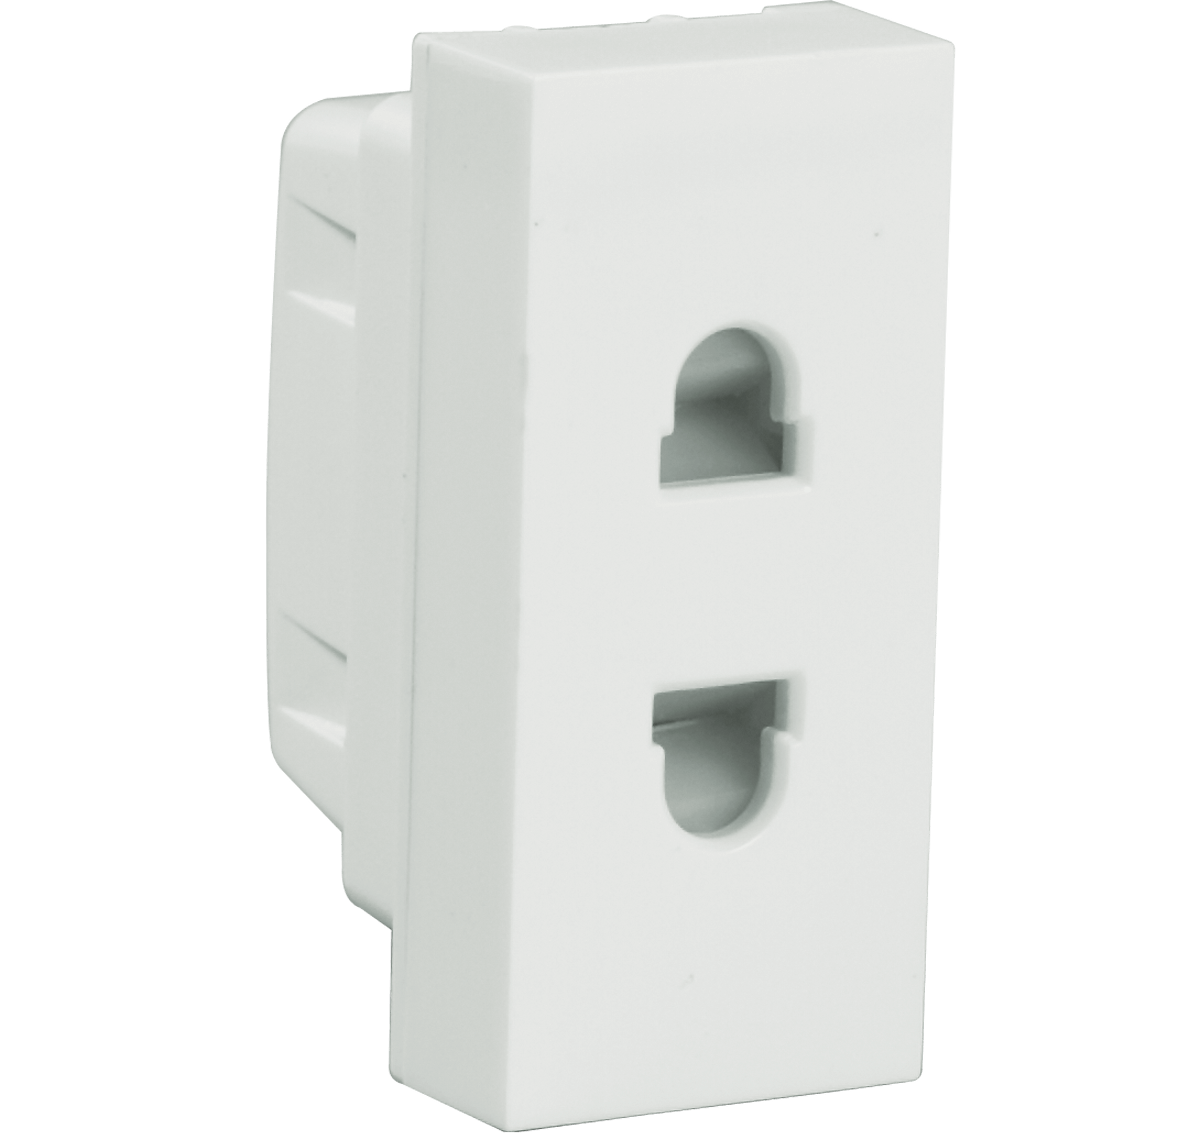 6A 2 Pin Shuttered Socket